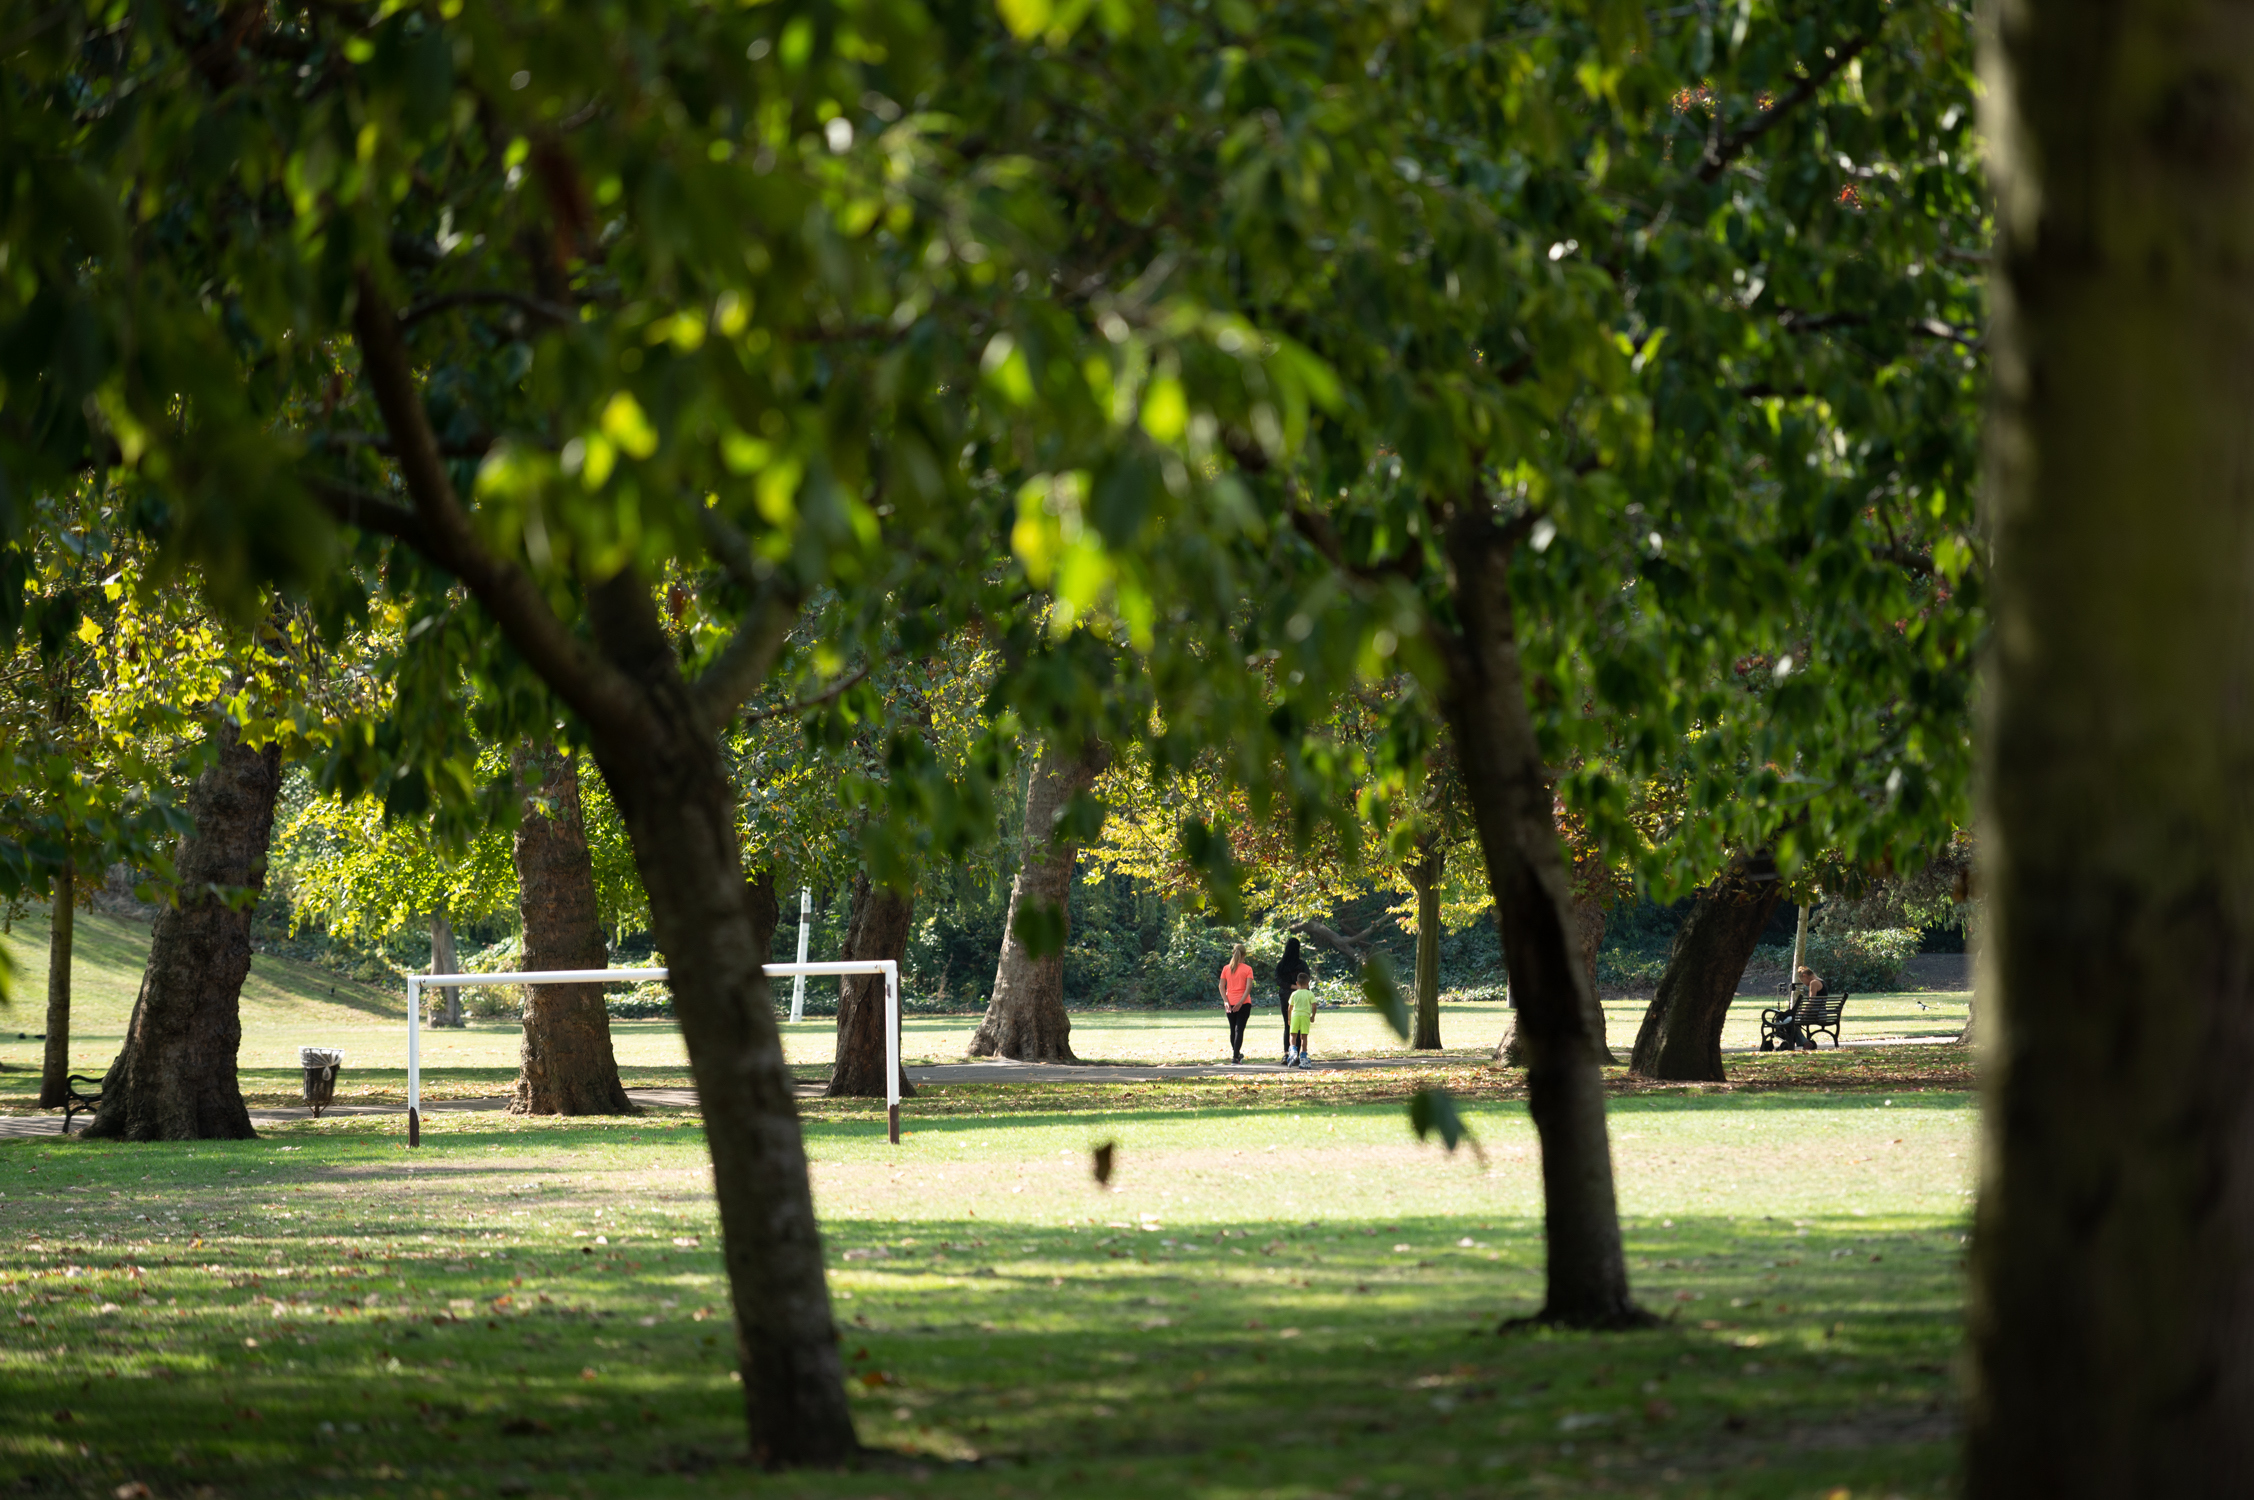 Park scene with trees and football goals